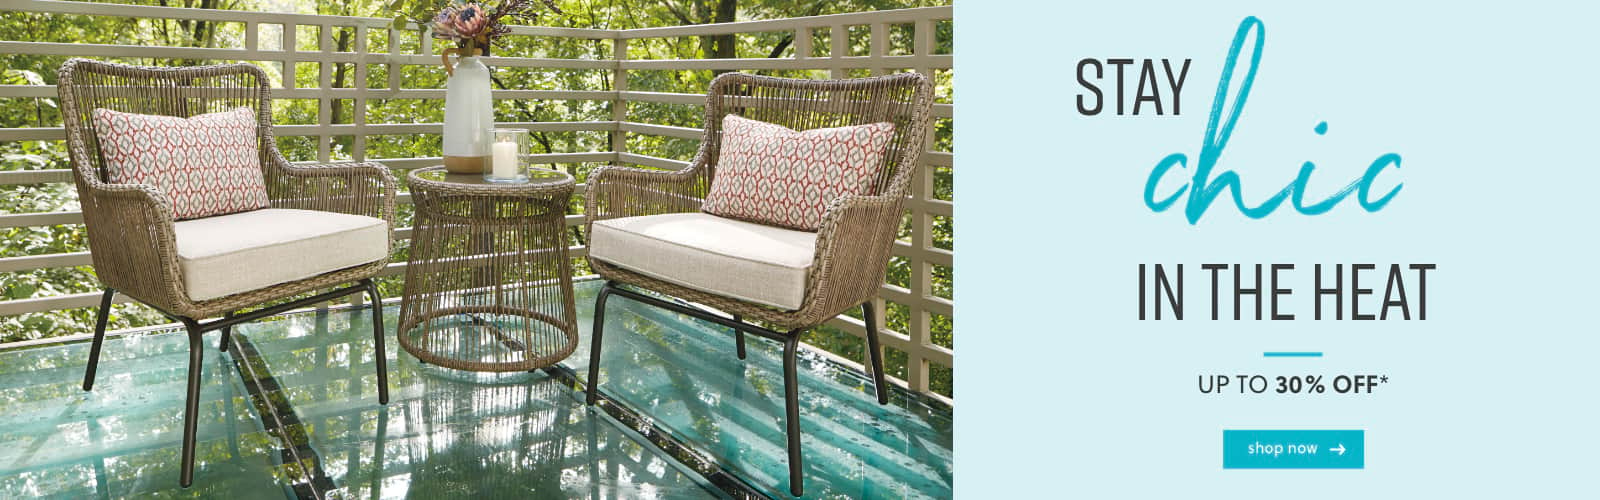 Patio Furniture Sale Mississauga Ashley Furniture Homestore Home Furniture Decor